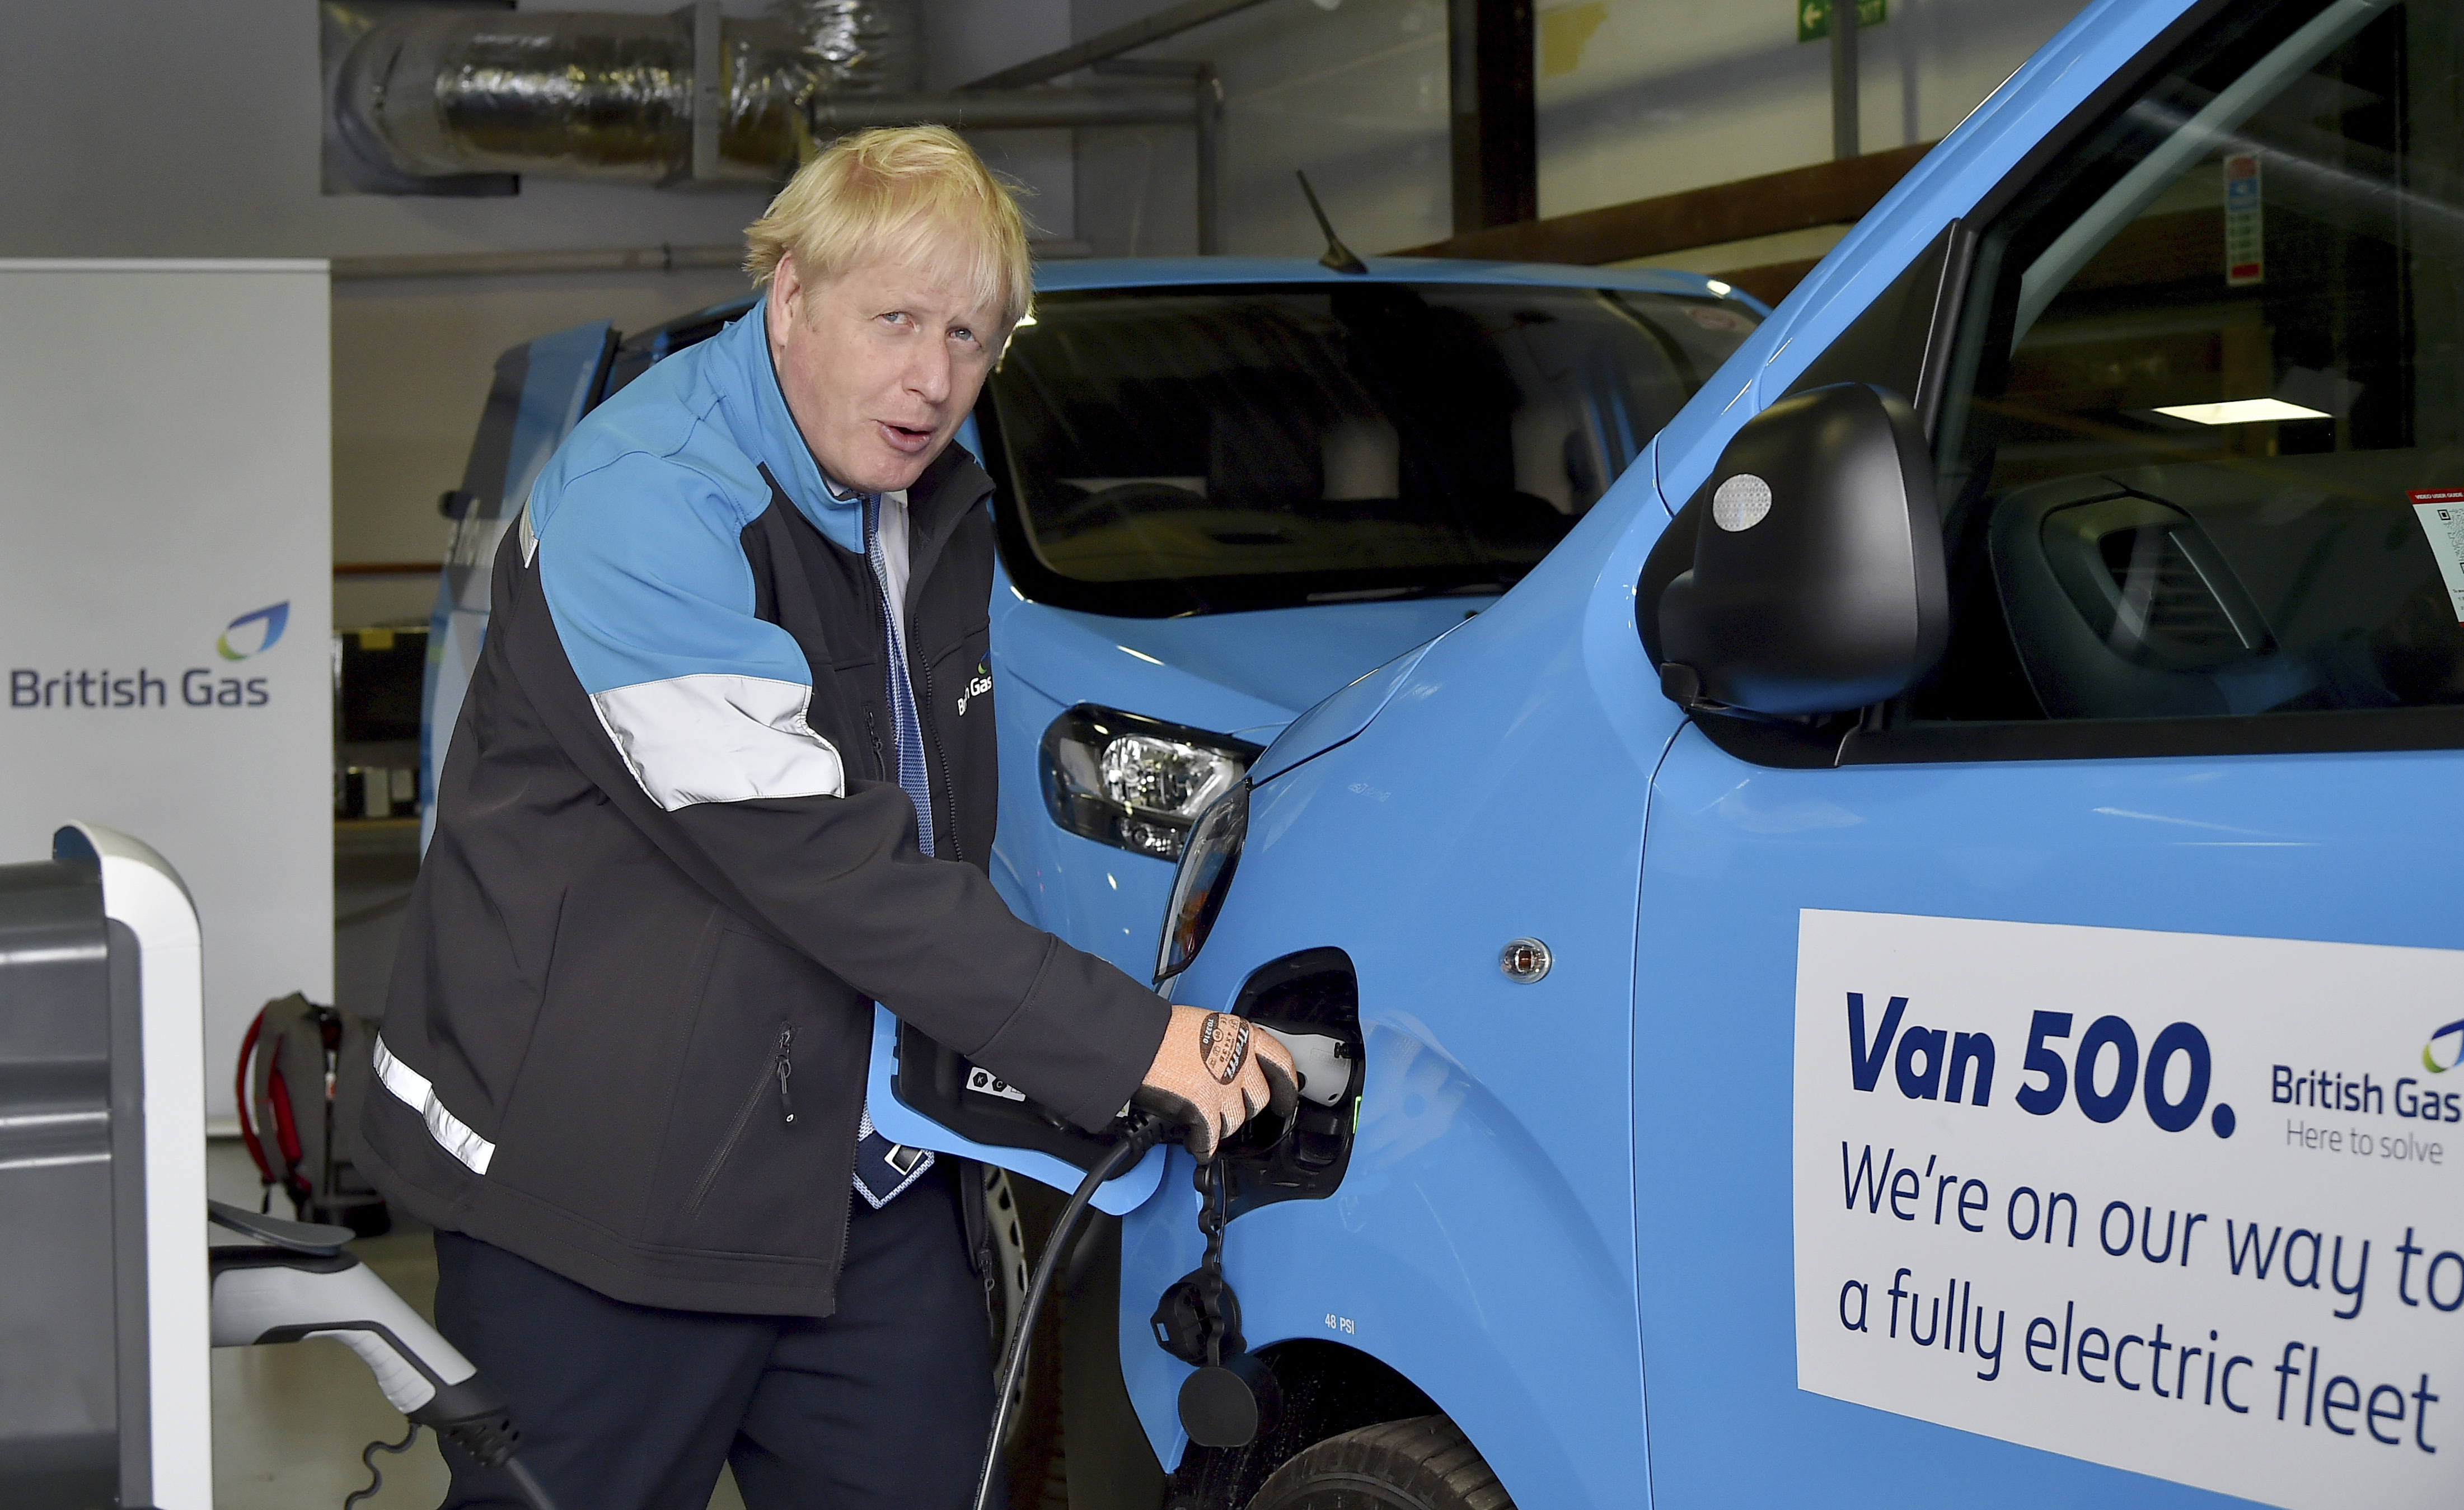 <p>Prime Minister Boris Johnson charges an electric van during a visit to a British Gas training academy in Leicestershire. Picture date: Monday September 13, 2021.</p>